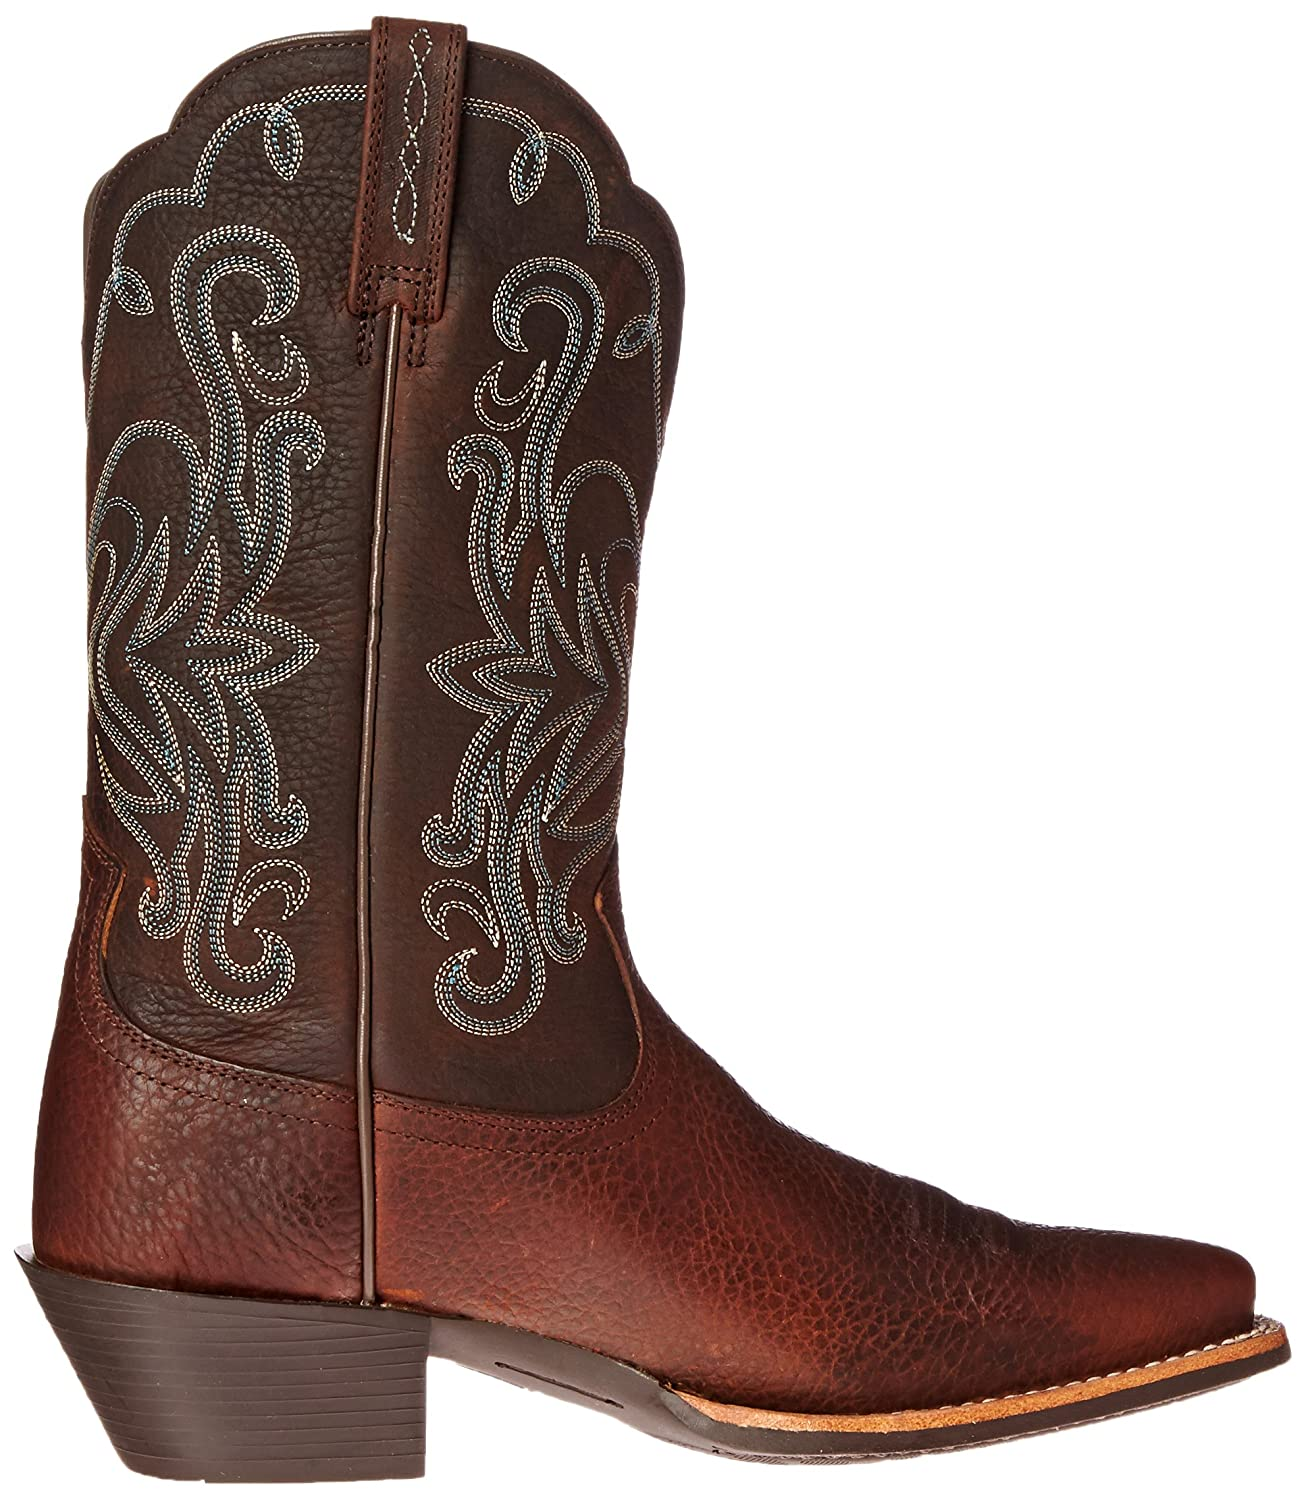 Ariat Women's Legend Western Cowboy US|Brown Boot B000MJX3B2 10 B(M) US|Brown Cowboy Oiled Rowdy b95a57